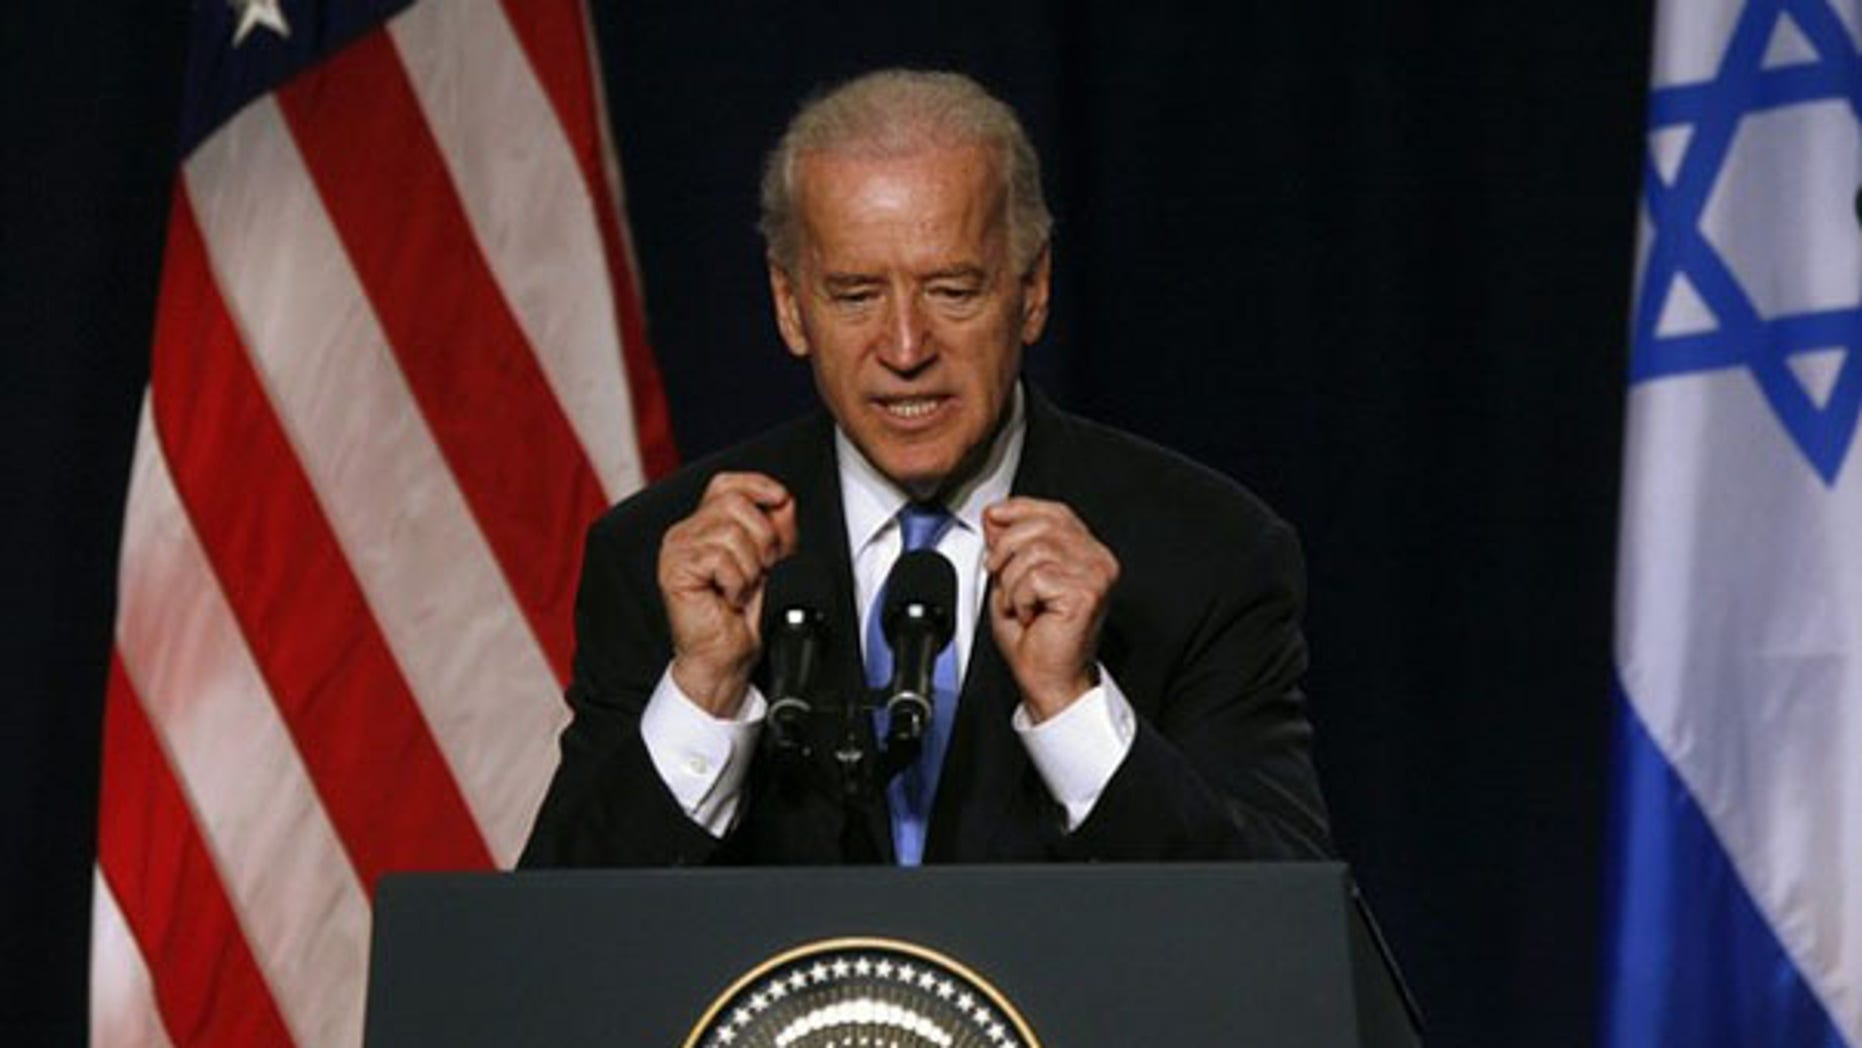 Vice President Biden speaks at Tel Aviv University March 11. (Reuters Photo)